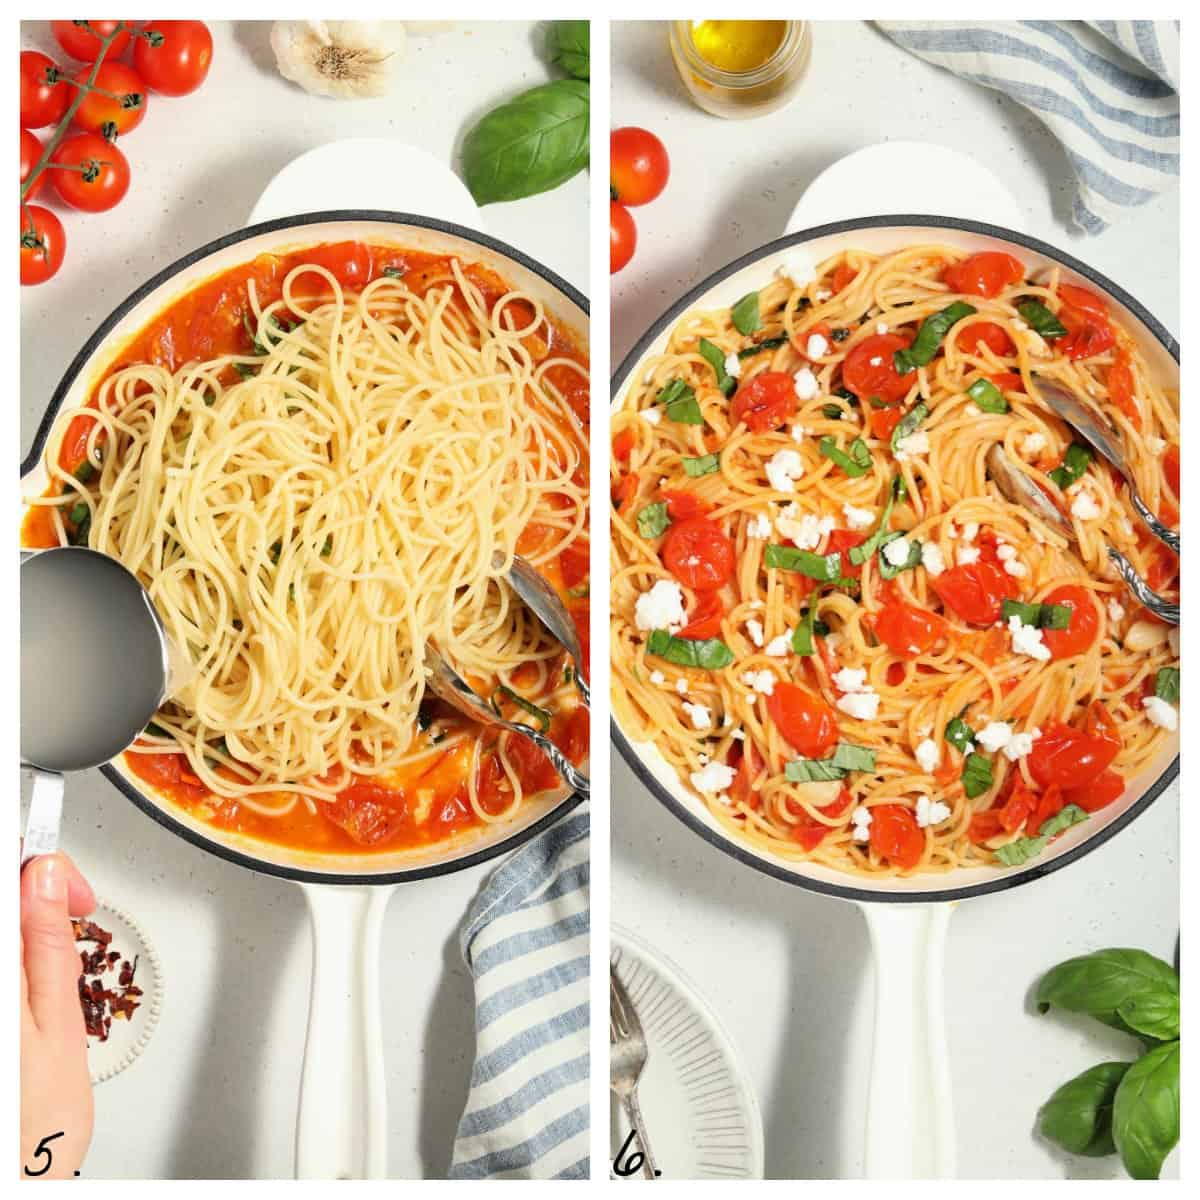 Two process photos of tossing pasta in sauce.